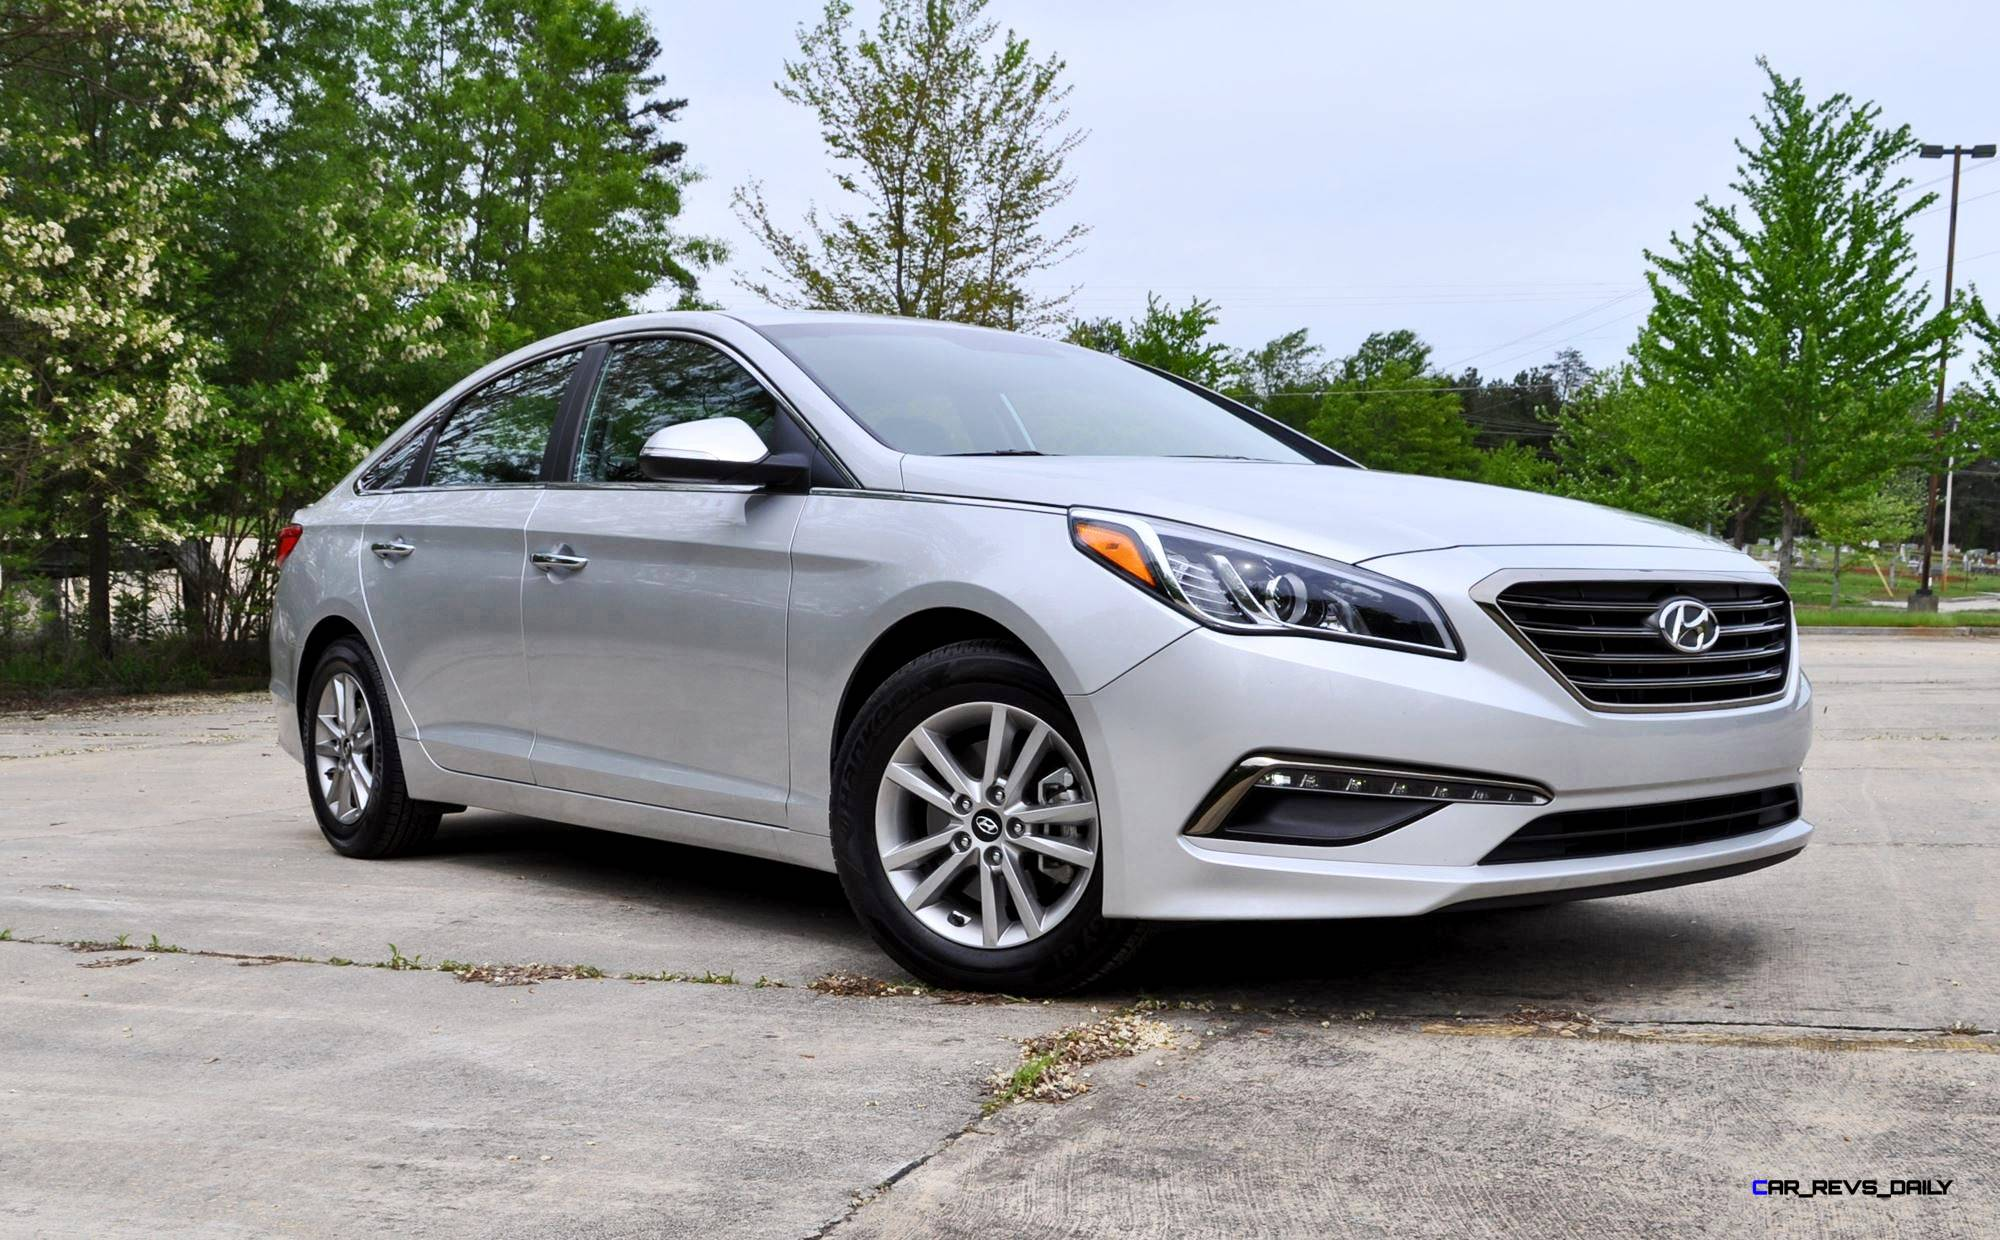 2015 hyundai sonata eco review 31 car revs. Black Bedroom Furniture Sets. Home Design Ideas